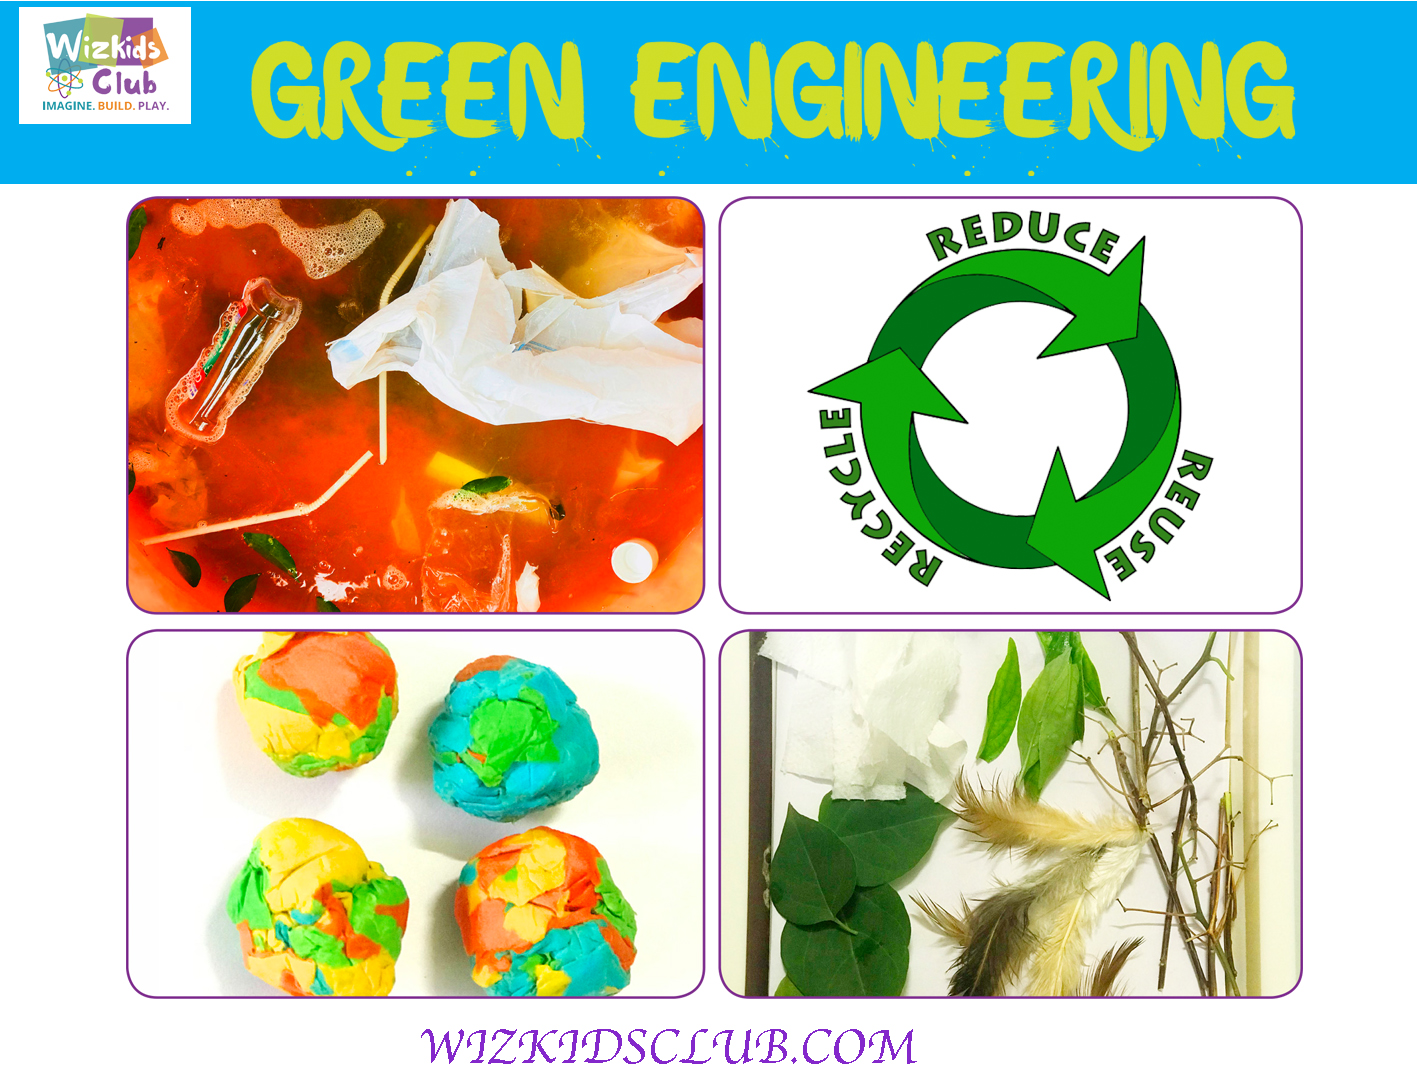 Green Engineering Image